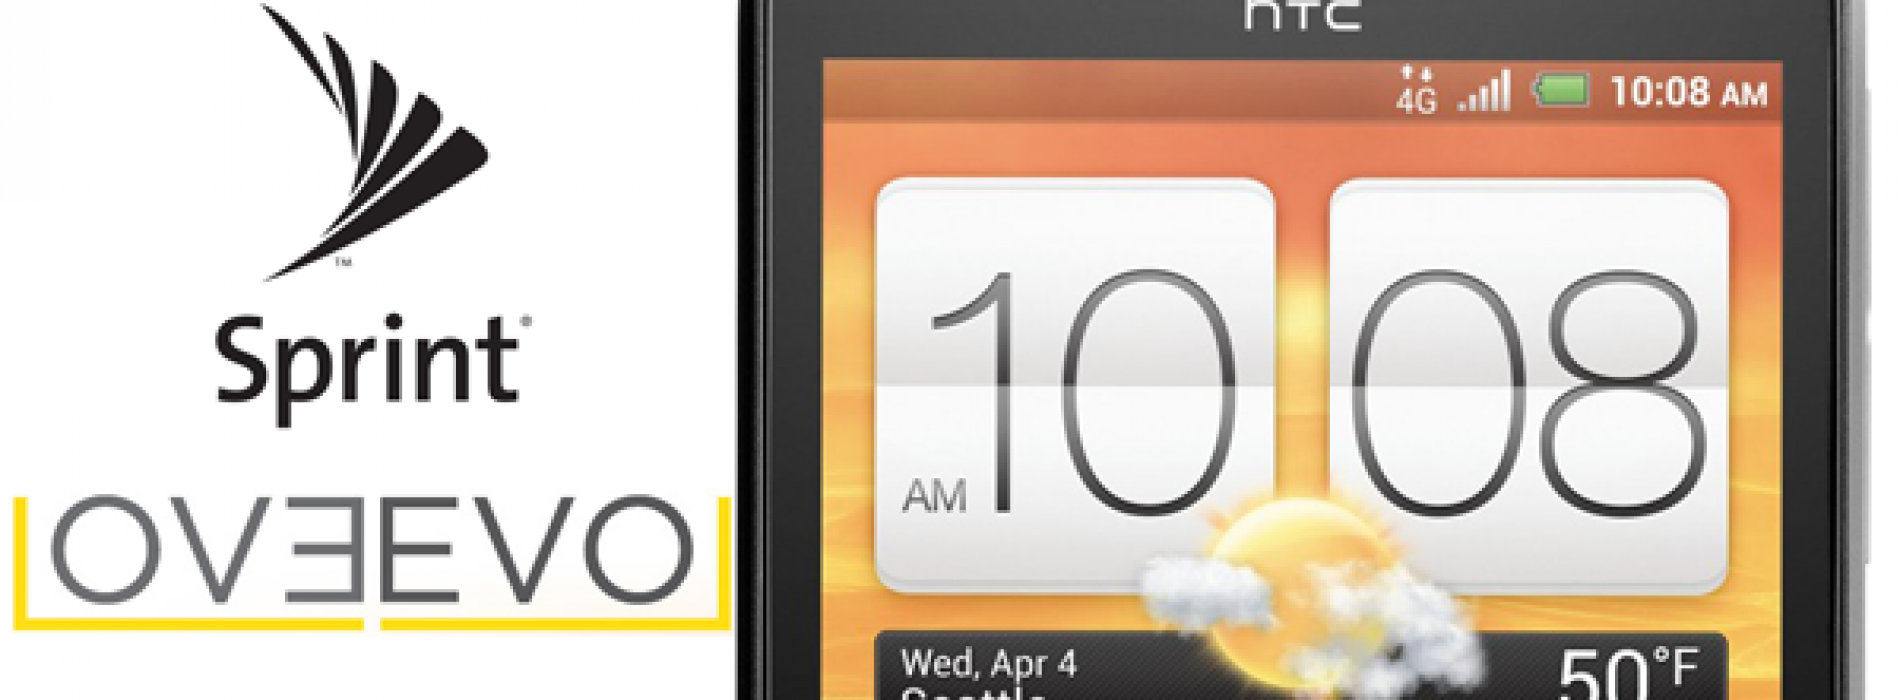 Sprint HTC Evo 4G LTE becomes real, release in Q2 for $199.99